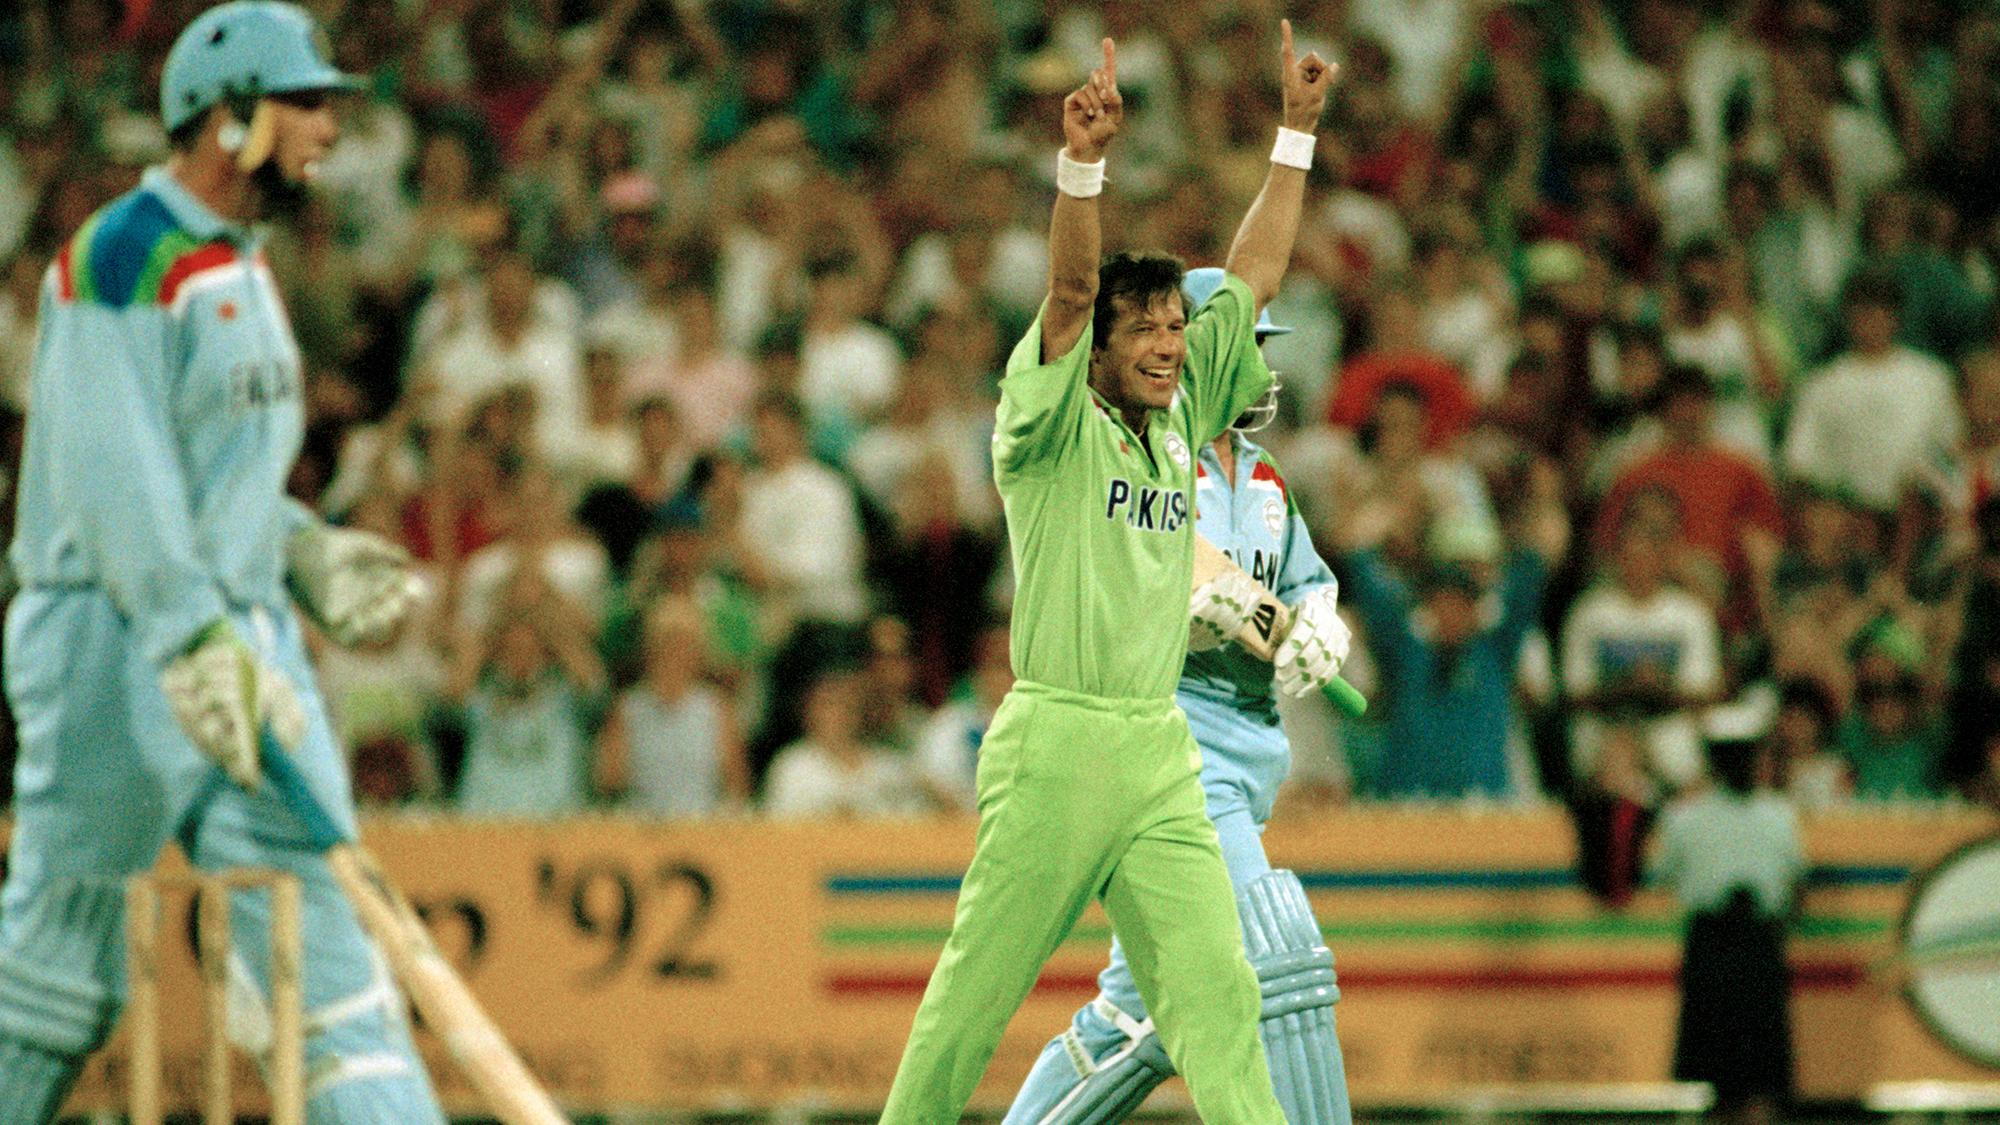 Pakistan vs England World Cup 1992